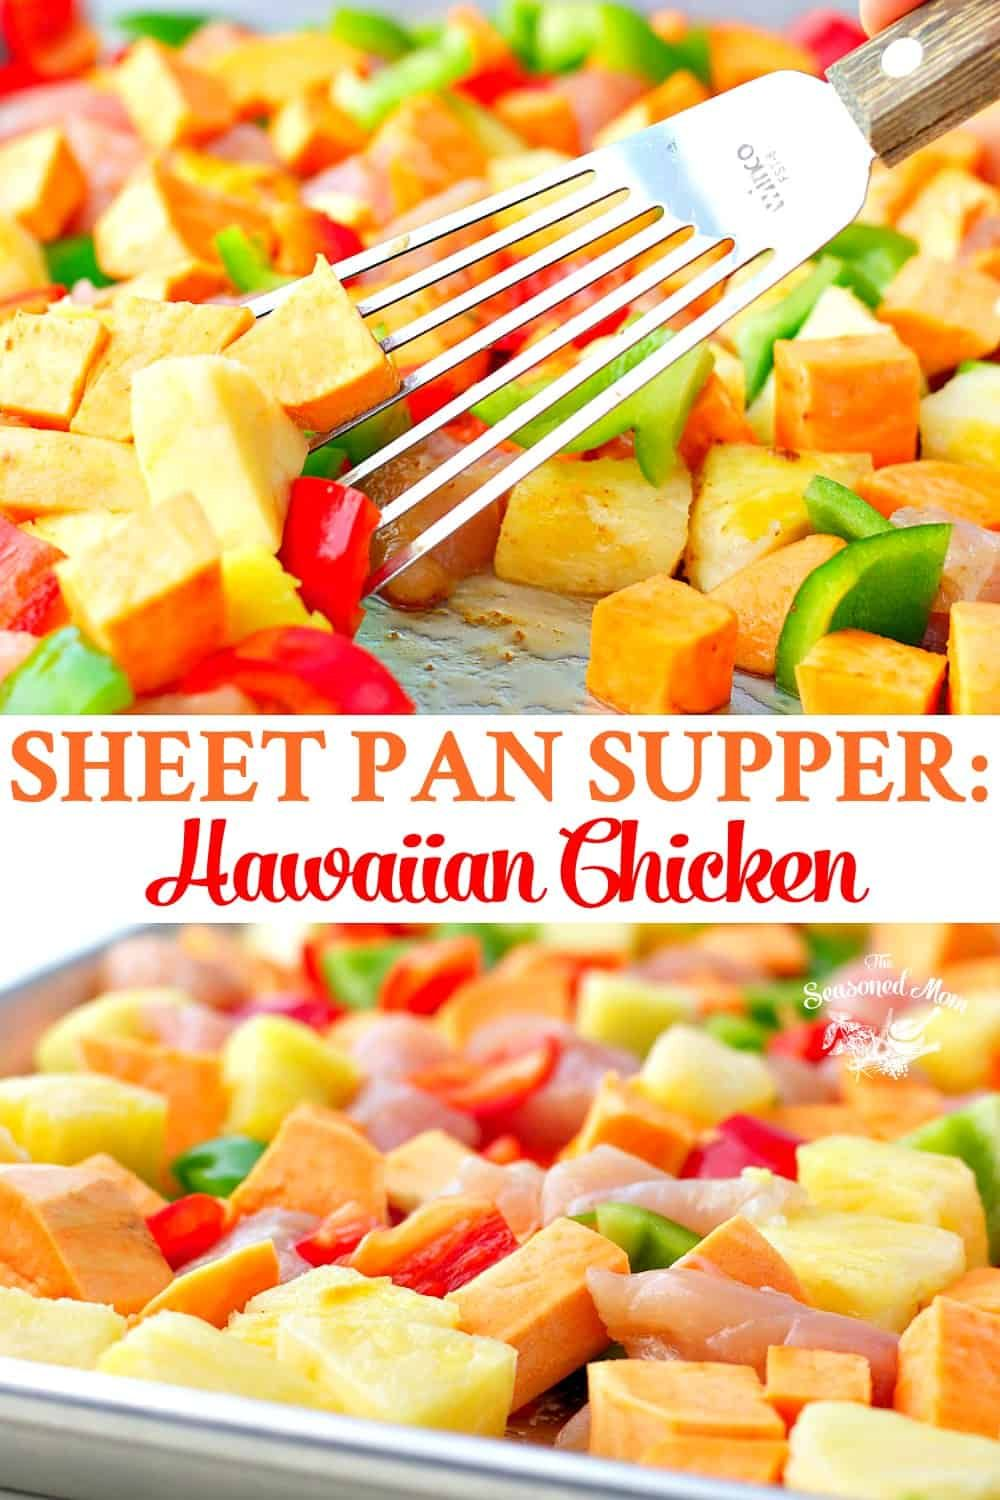 Sheet Pan Supper: Hawaiian Chicken images